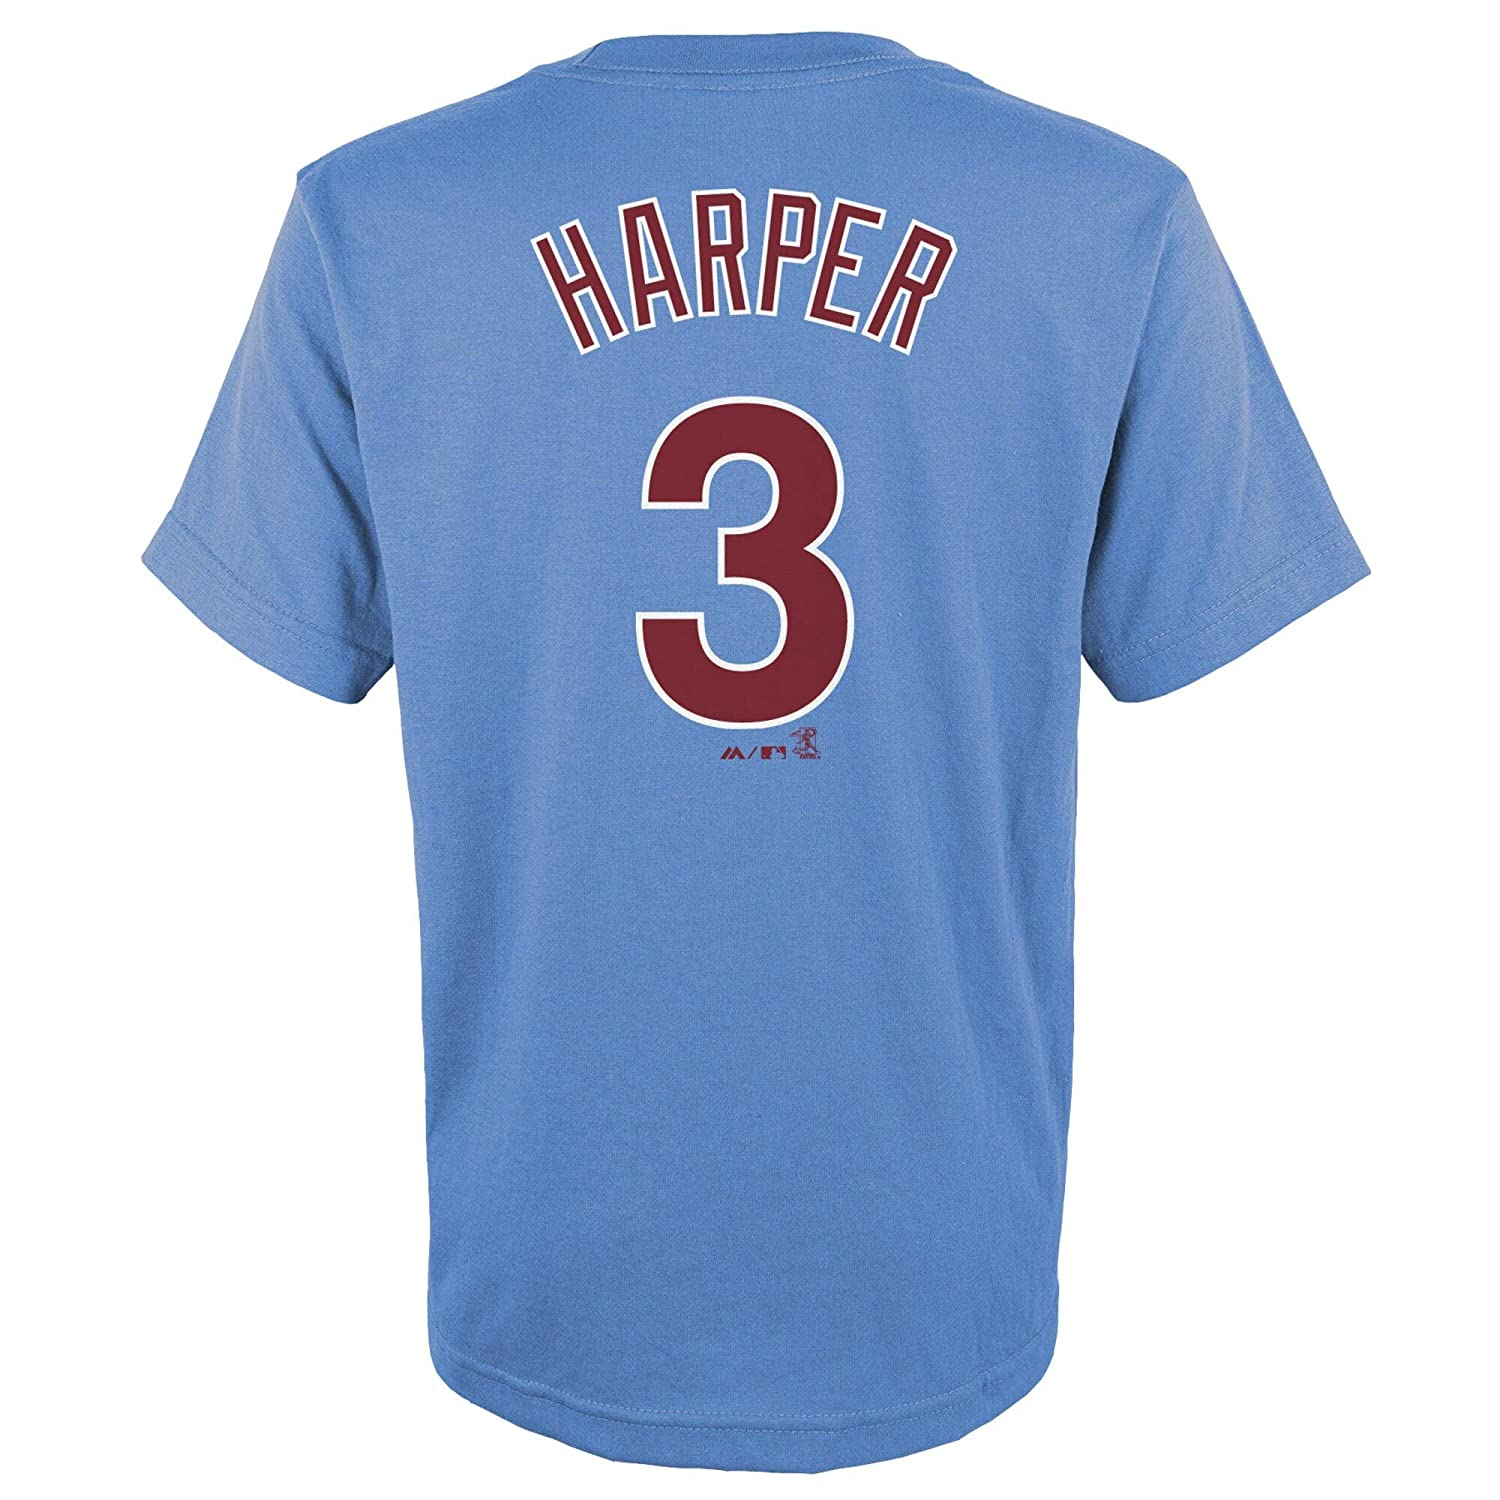 Outerstuff Bryce Harper Philadelphia Phillies #3 Blue Youth Alternate Name /& Number Jersey T-Shirt